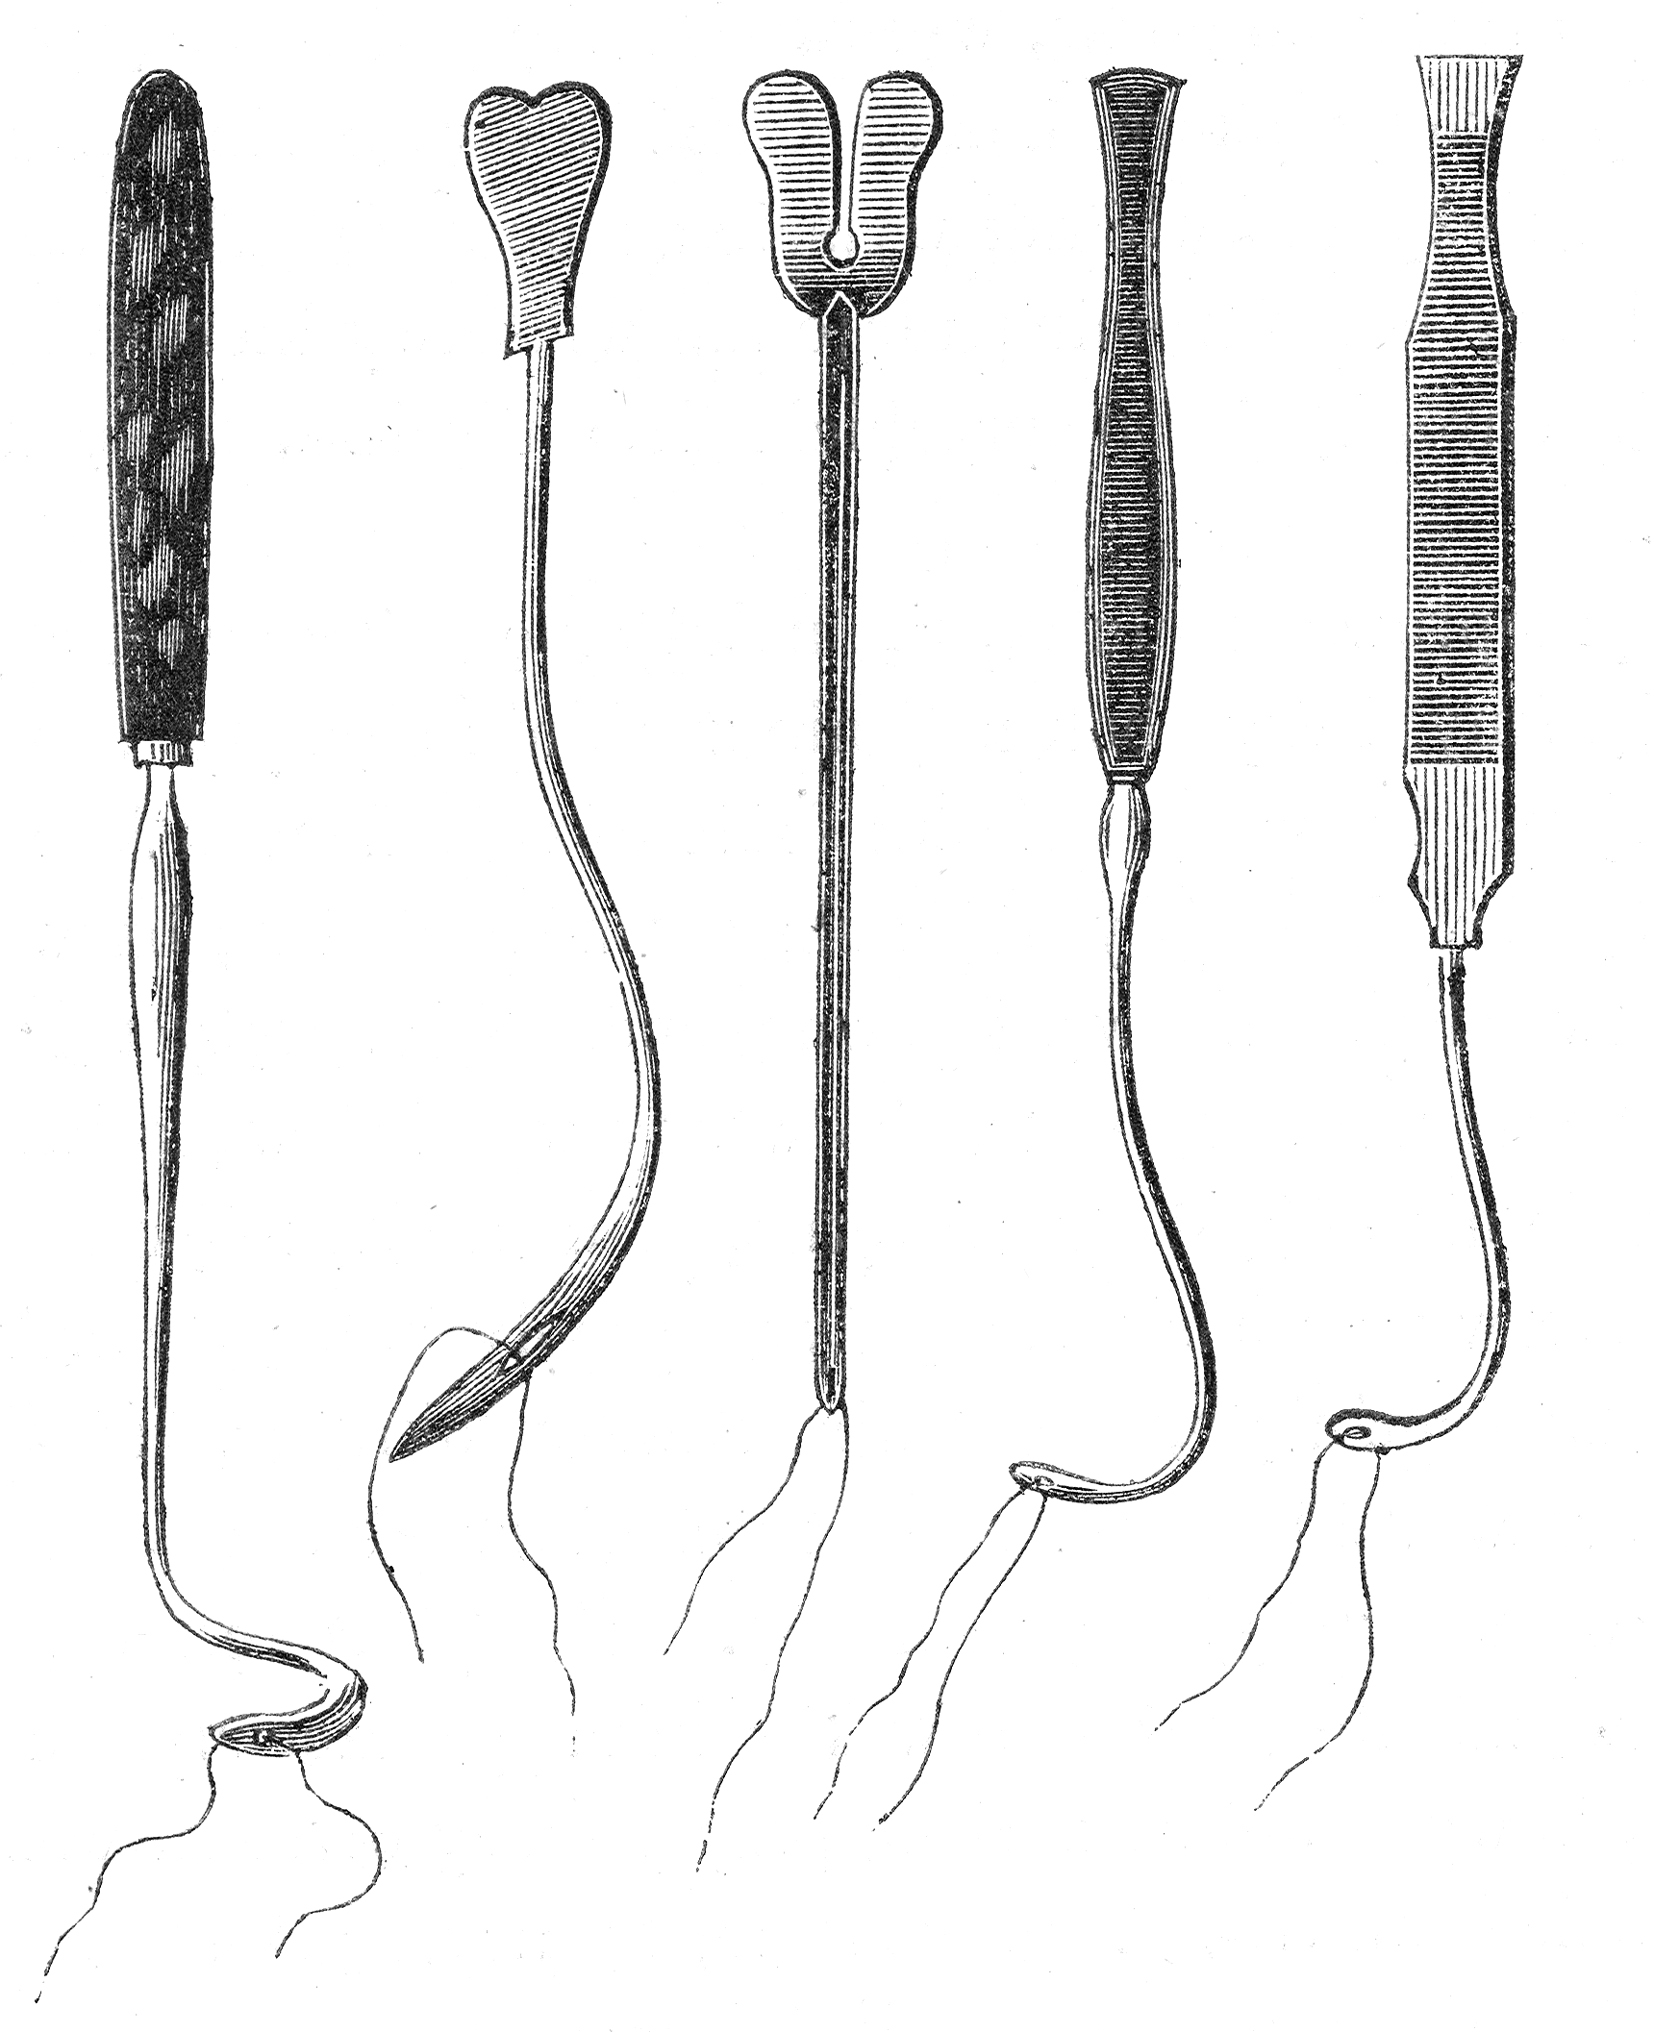 Surgical needles